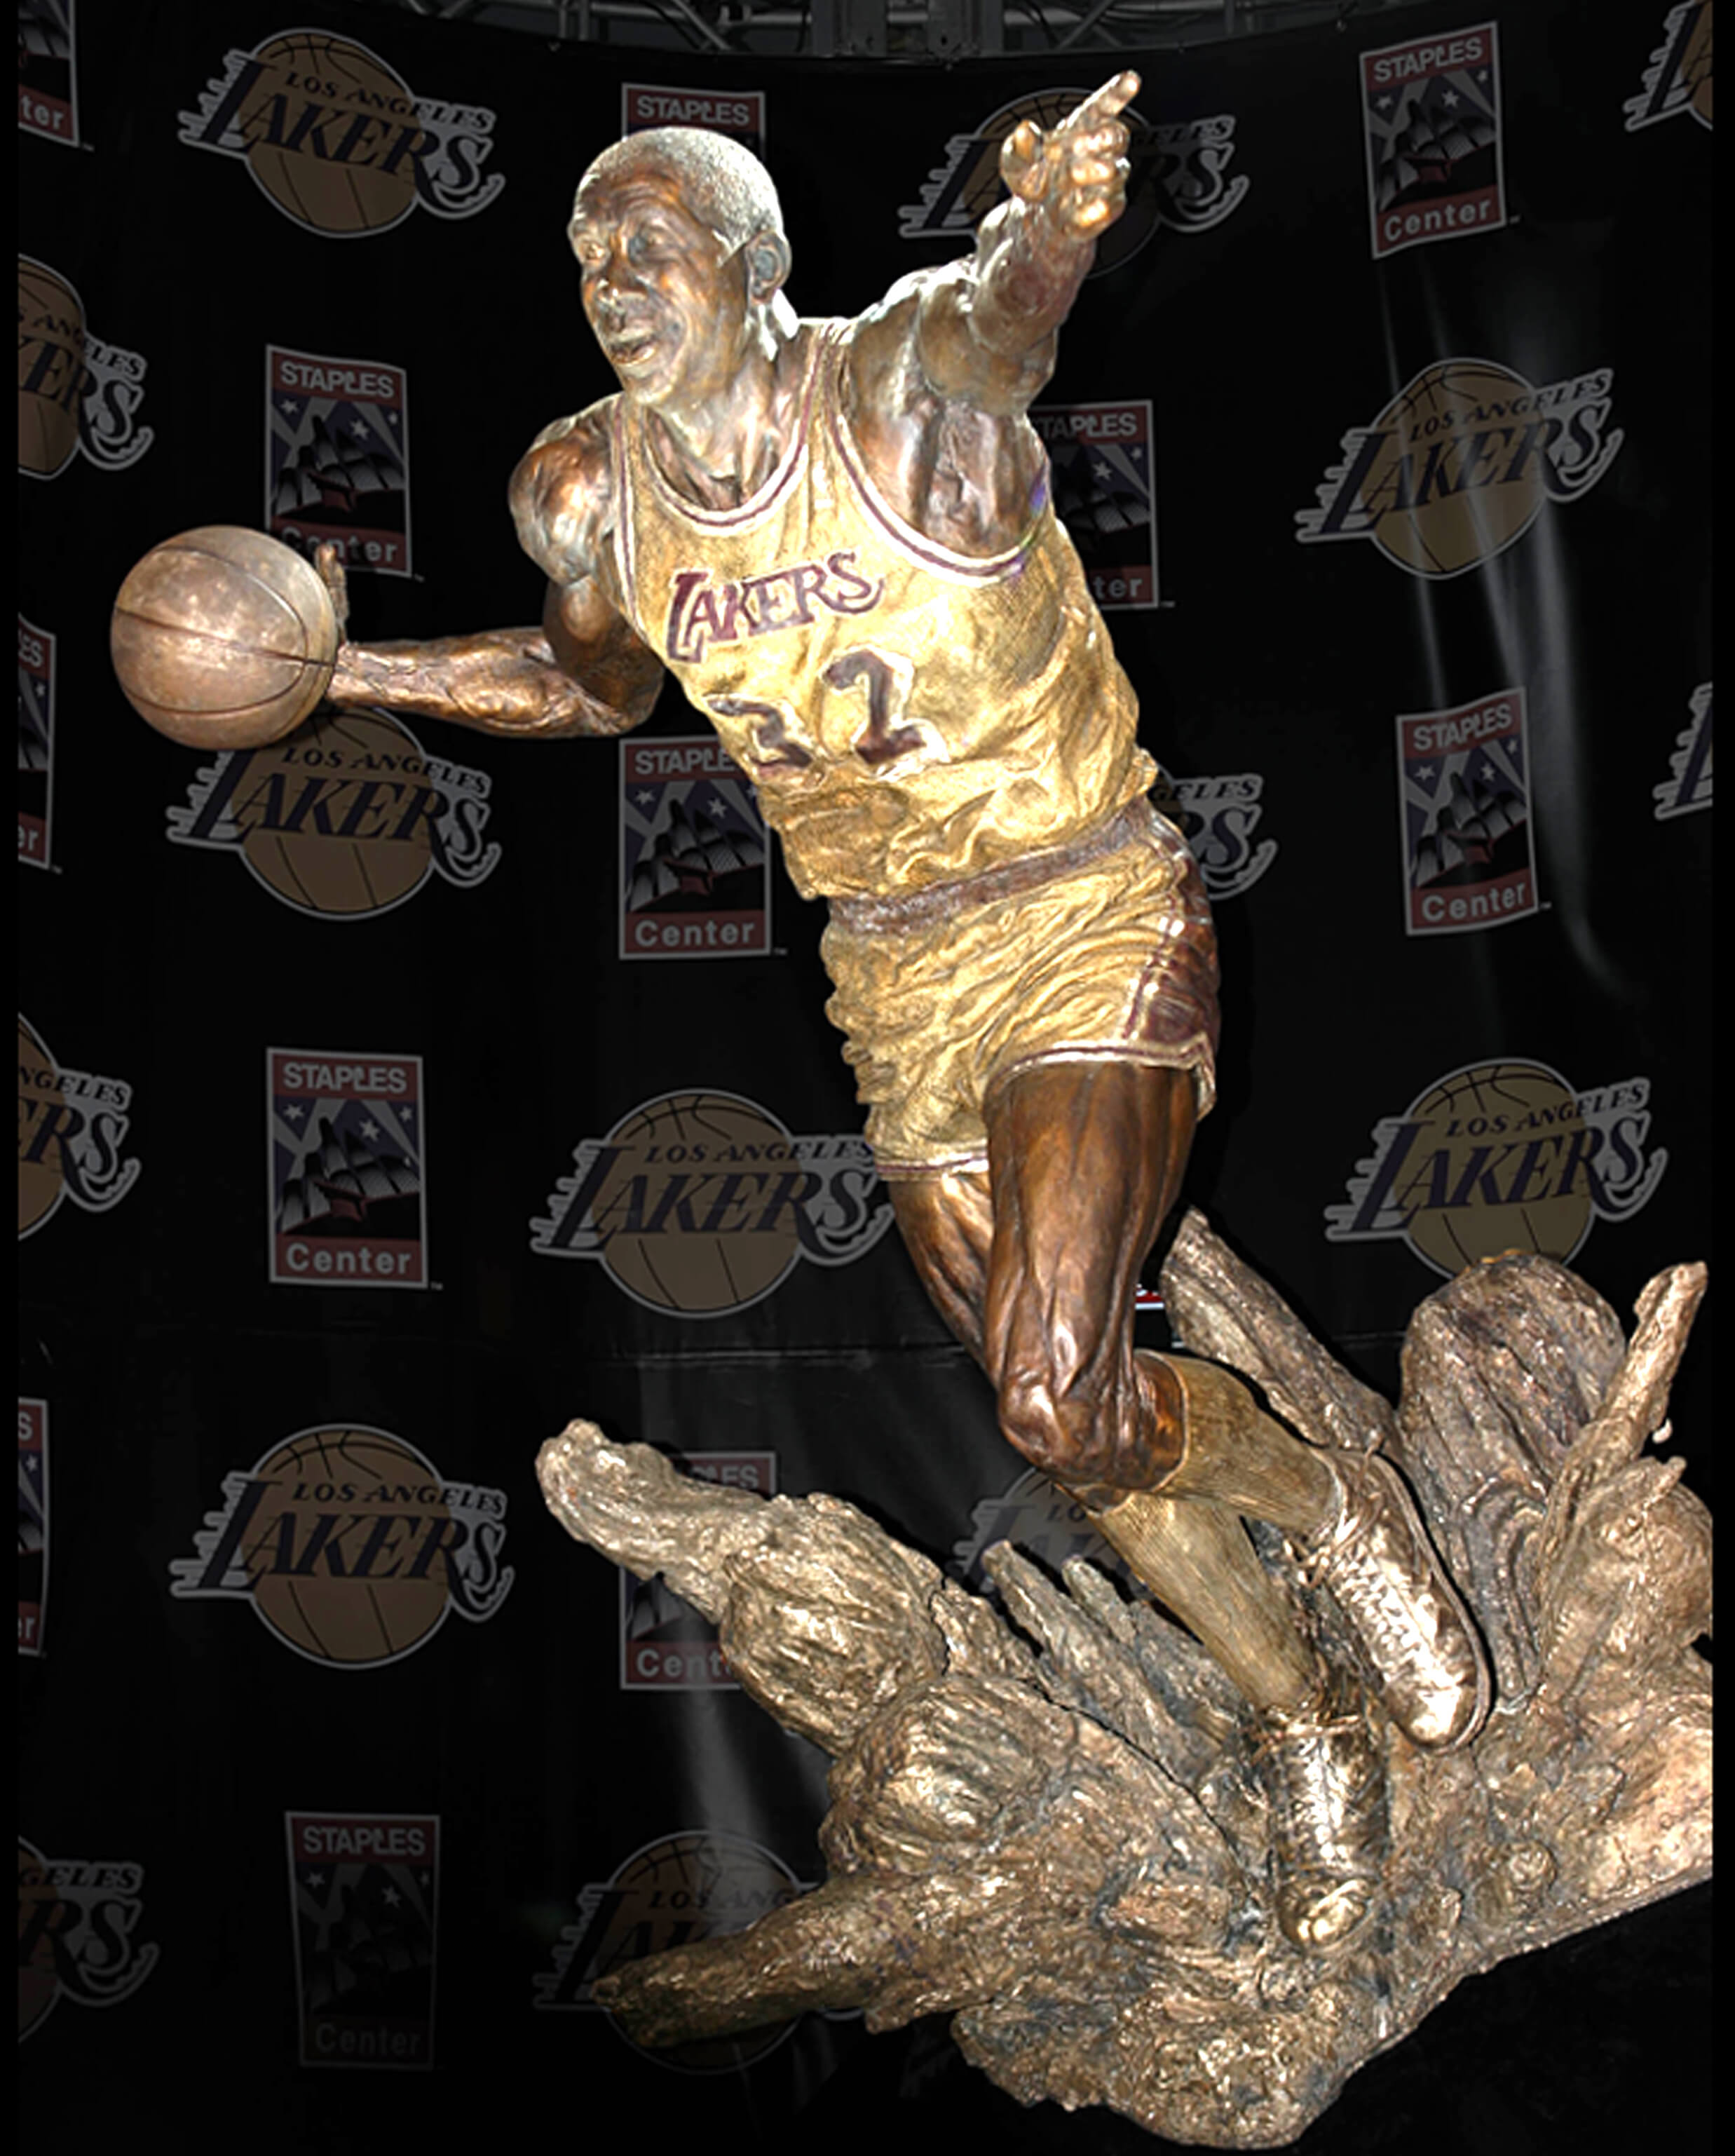 Magic Johnson Sculpture in LA – Sports Commission Bronze Statue